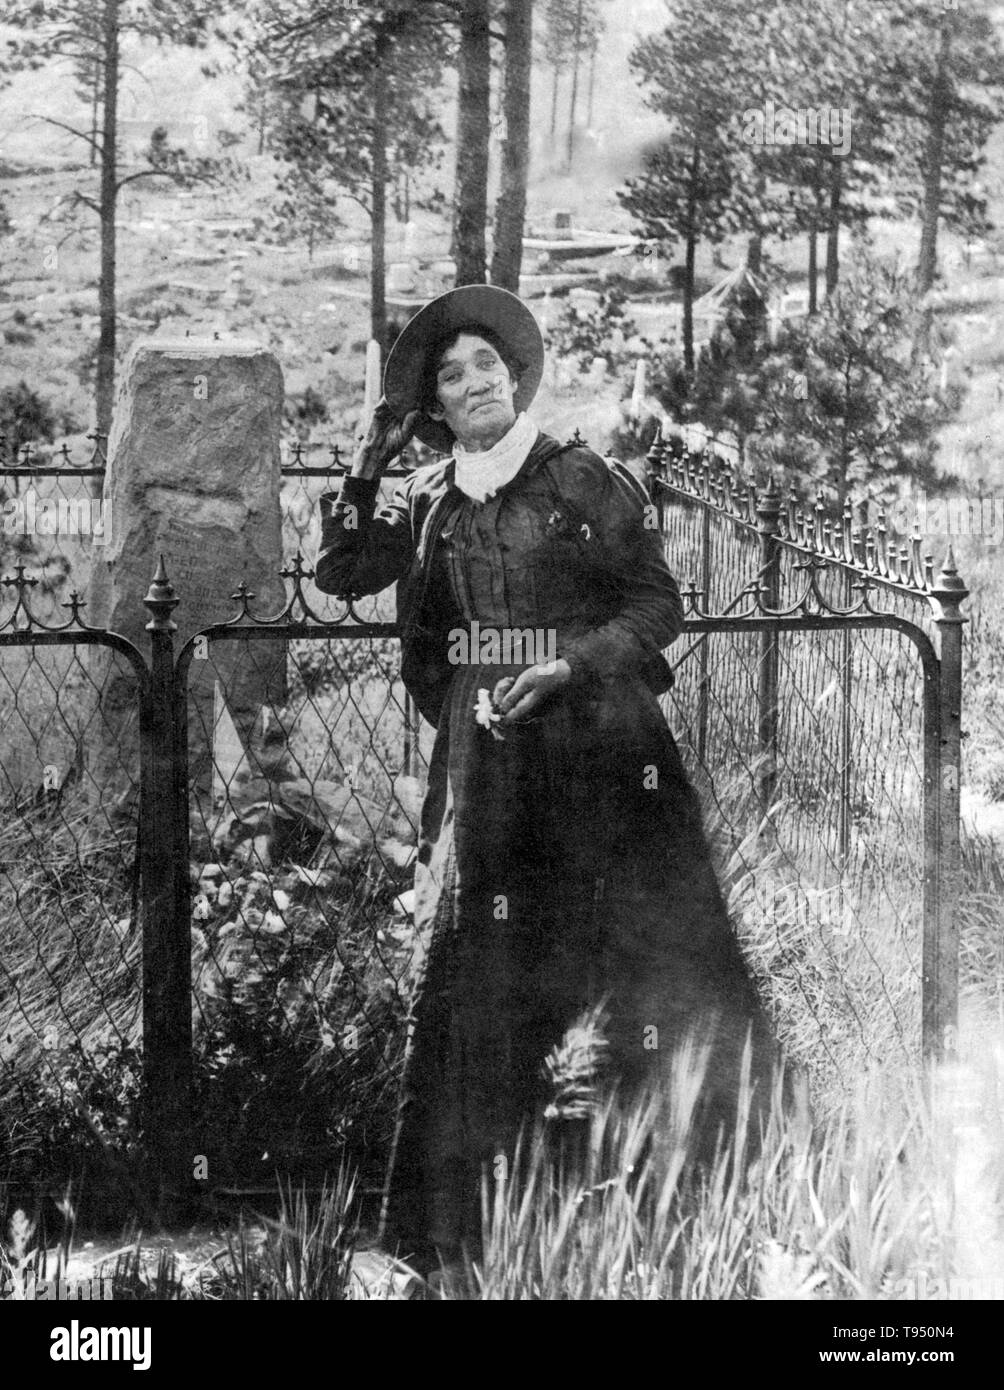 Calamity Jane, standing by the grave of Wild Bill Hickok, photogrpahed by J.A. Kumpf, 1903. Martha Jane Canary (May 1, 1852 - August 1, 1903), better known as Calamity Jane, was an American frontierswoman and professional scout. She received little to no formal education and was illiterate. She worked as a dishwasher, a cook, a waitress, a dance-hall girl, a nurse, and an ox team driver. In 1874, she found work as a scout at Fort Russell. In 1876, she settled in the area of Deadwood and became friendly with Wild Bill Hickok and Charlie Utter. In 1881, she bought a ranch in Montana, along the Y - Stock Image